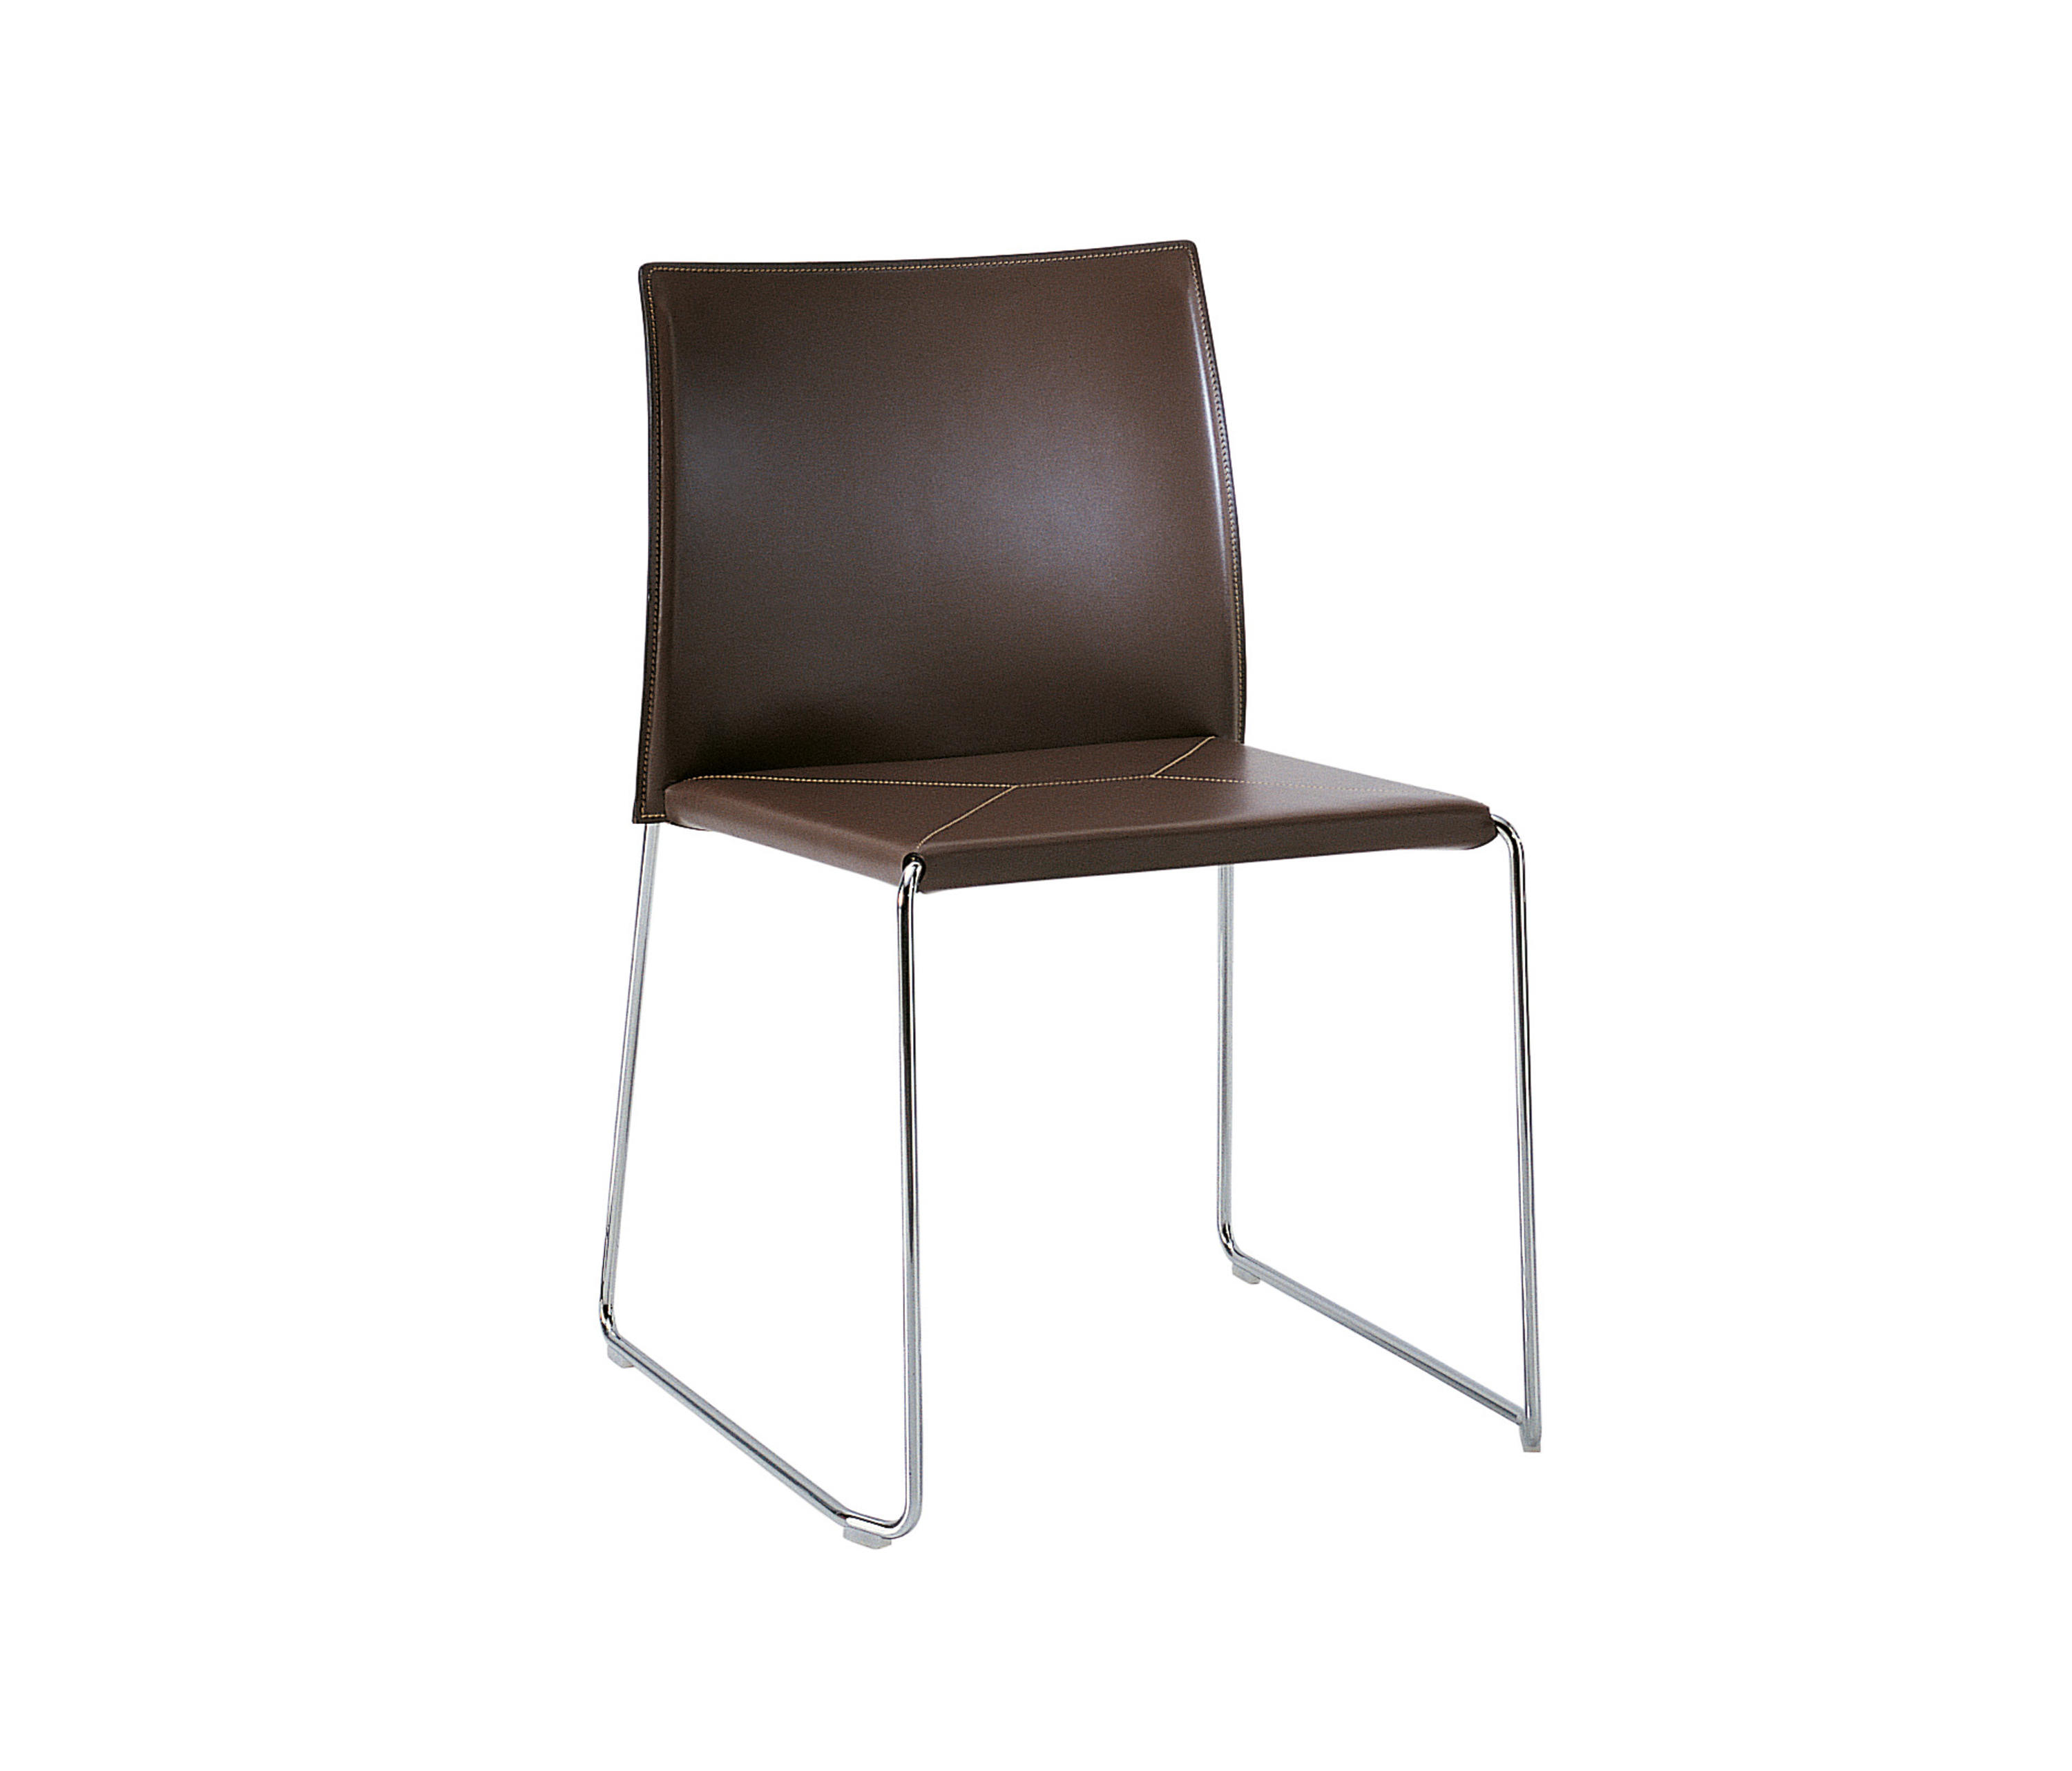 Bizzy Chair Restaurant Chairs From Enrico Pellizzoni